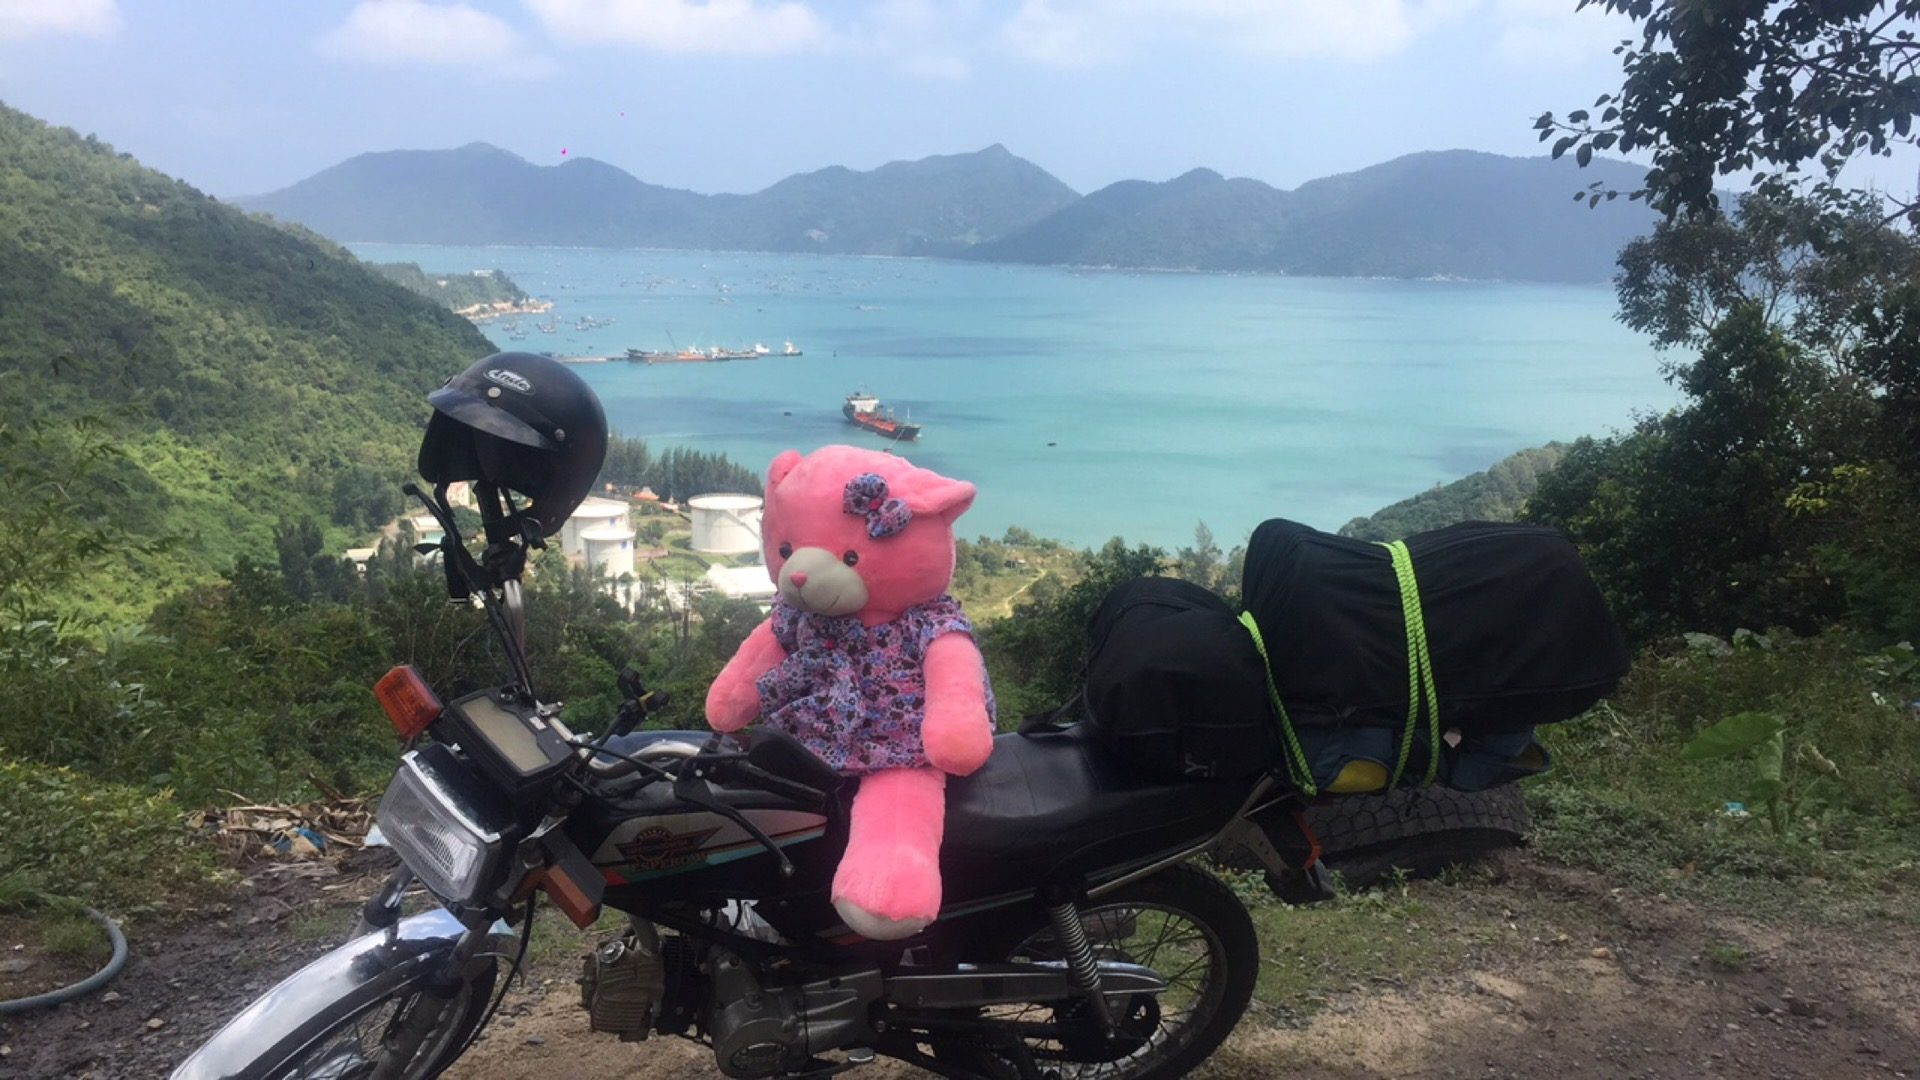 A pink bear on a motorbike and a beautiful view in Da Lat, Vietnam. Night rider and a broken bike